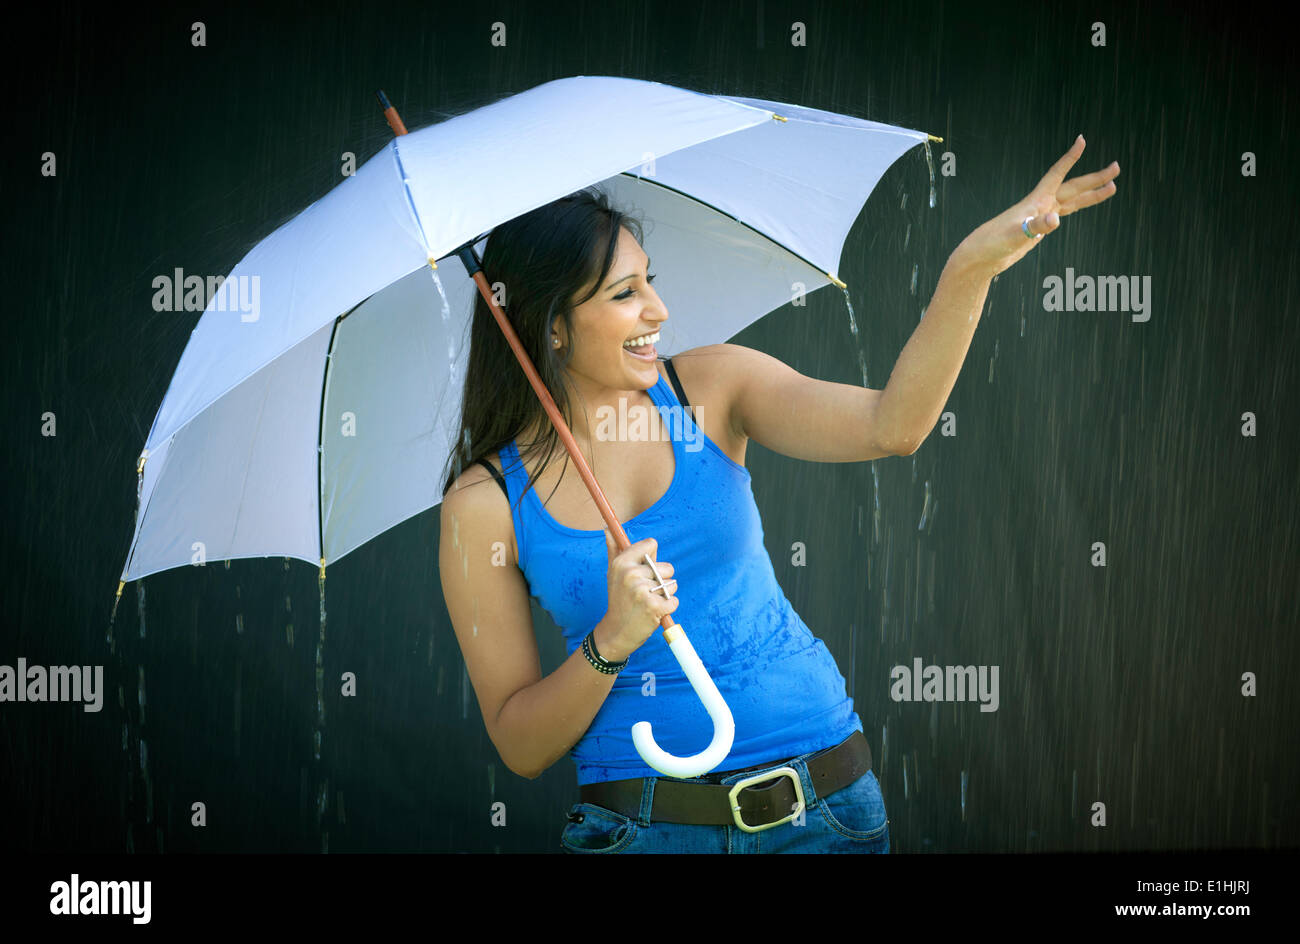 Smiling young woman holding an umbrella, profitant de la pluie Photo Stock